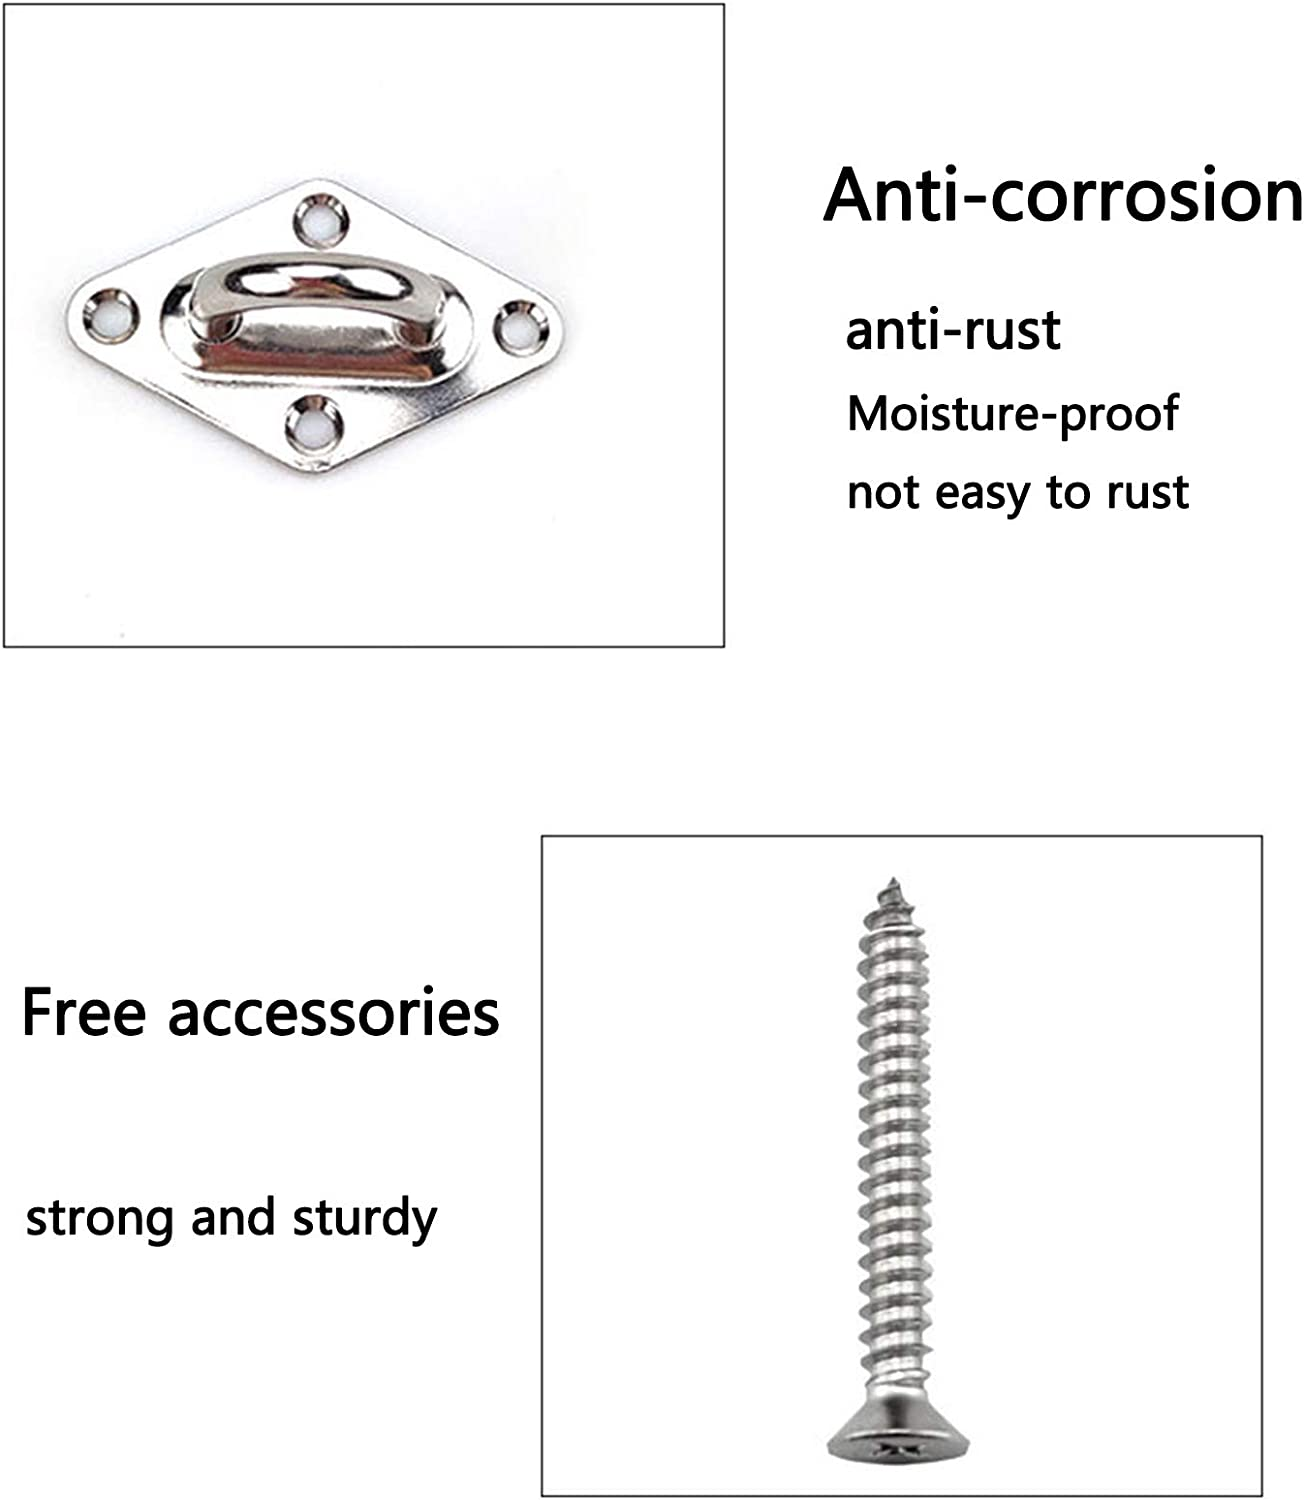 Tent Installation Anti-Rust lop M8 Hook /& Hook//C to C Turnbuckles 304 Stainless Steel Hardware Kit for Sun Shade